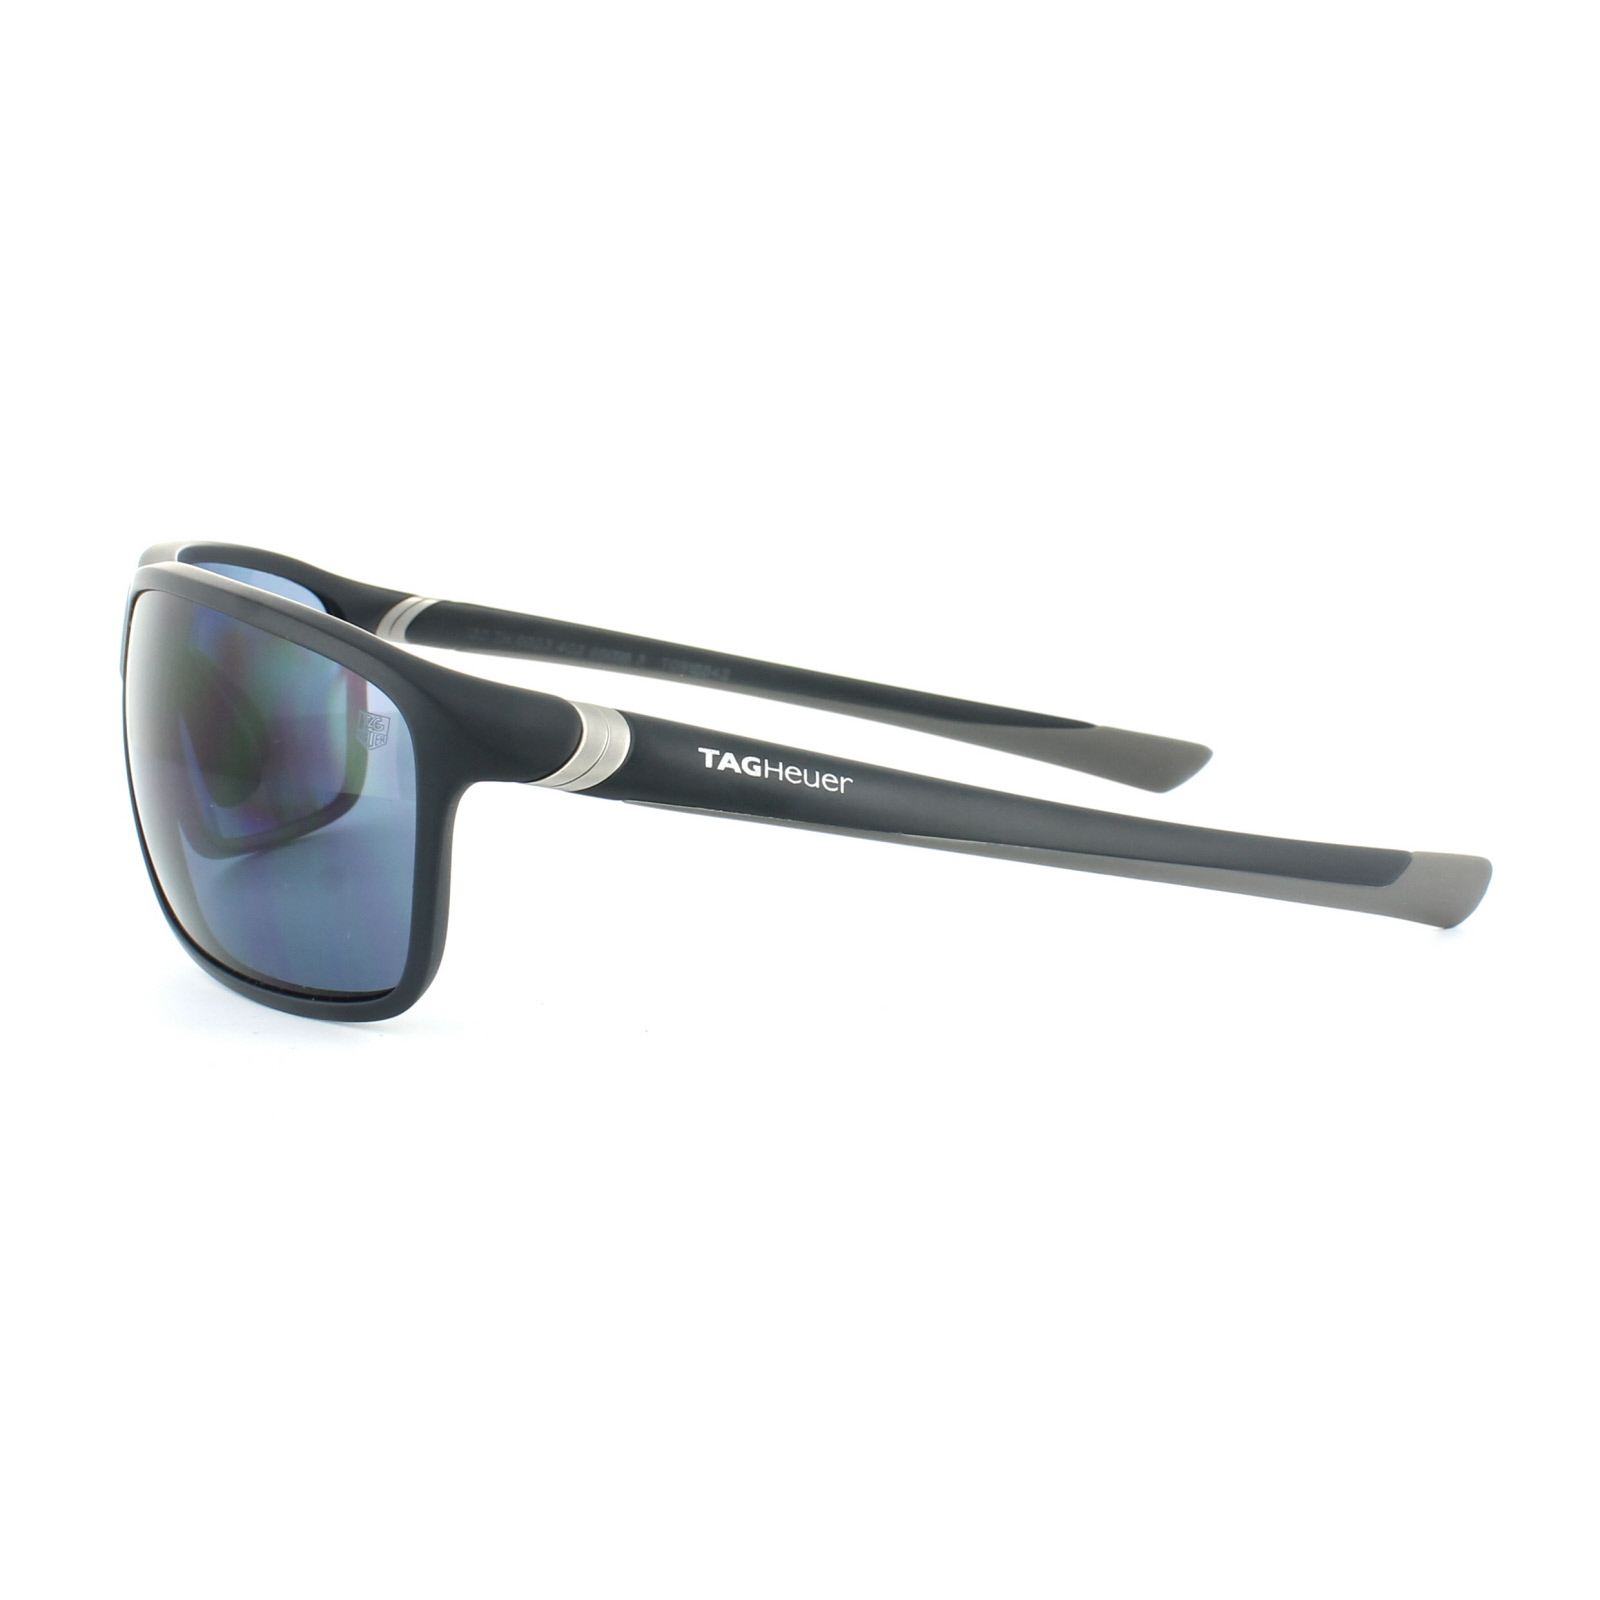 c8803fc9de Sentinel Tag Heuer Sunglasses 27 Degrees 6023 403 Blue   Grey Watersport  Blue Polarized